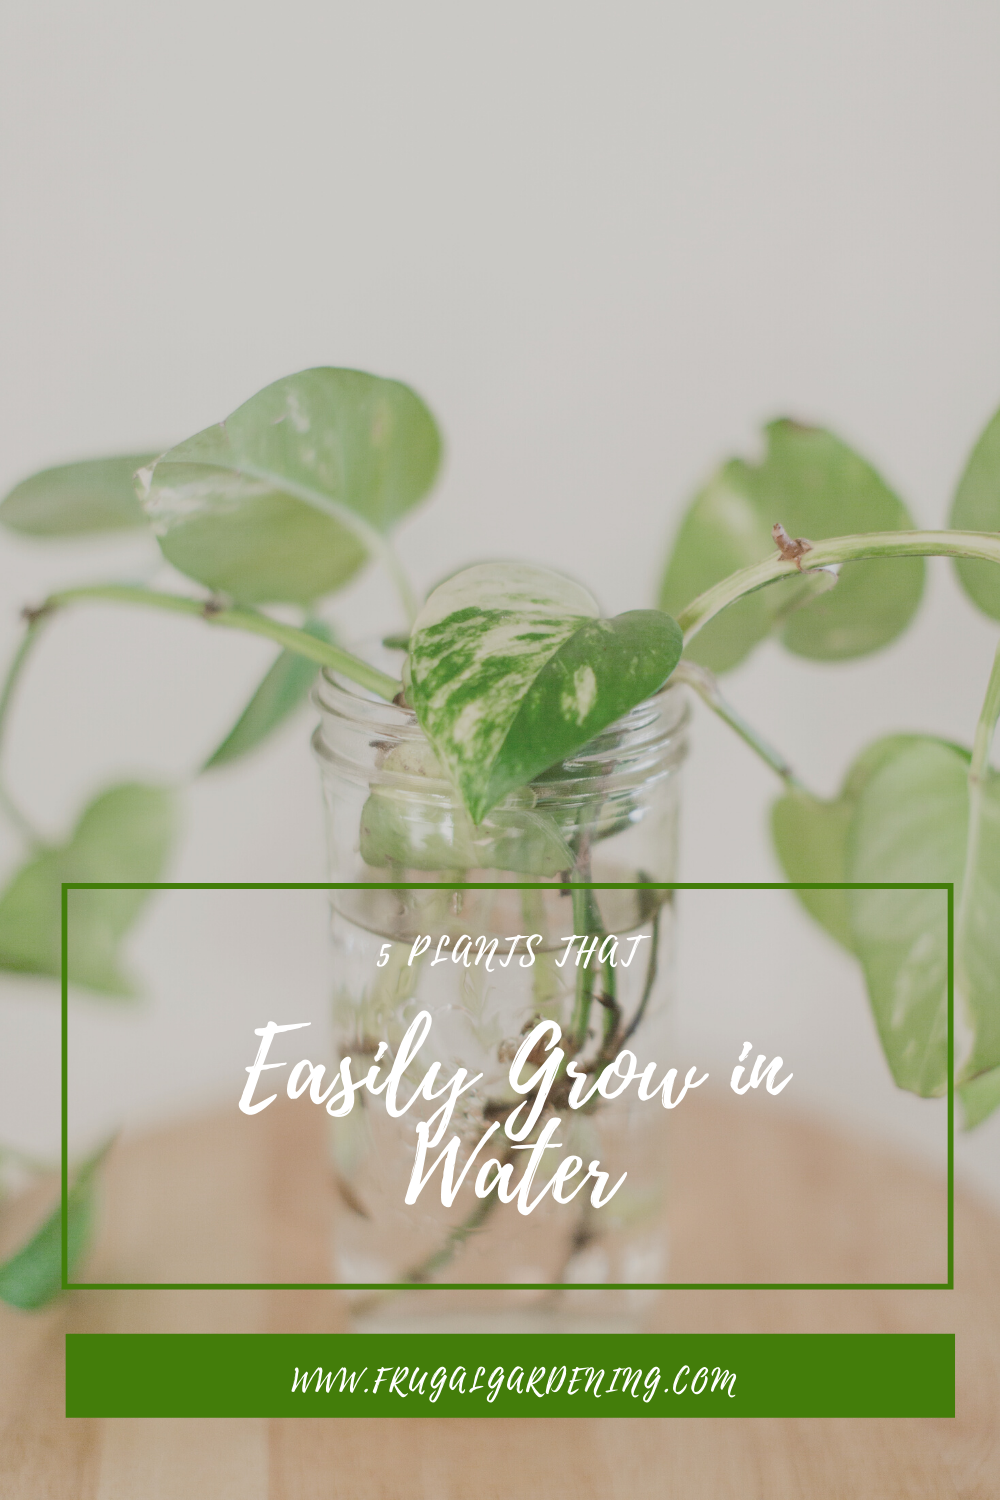 5 Plants That Easily Grow in Water